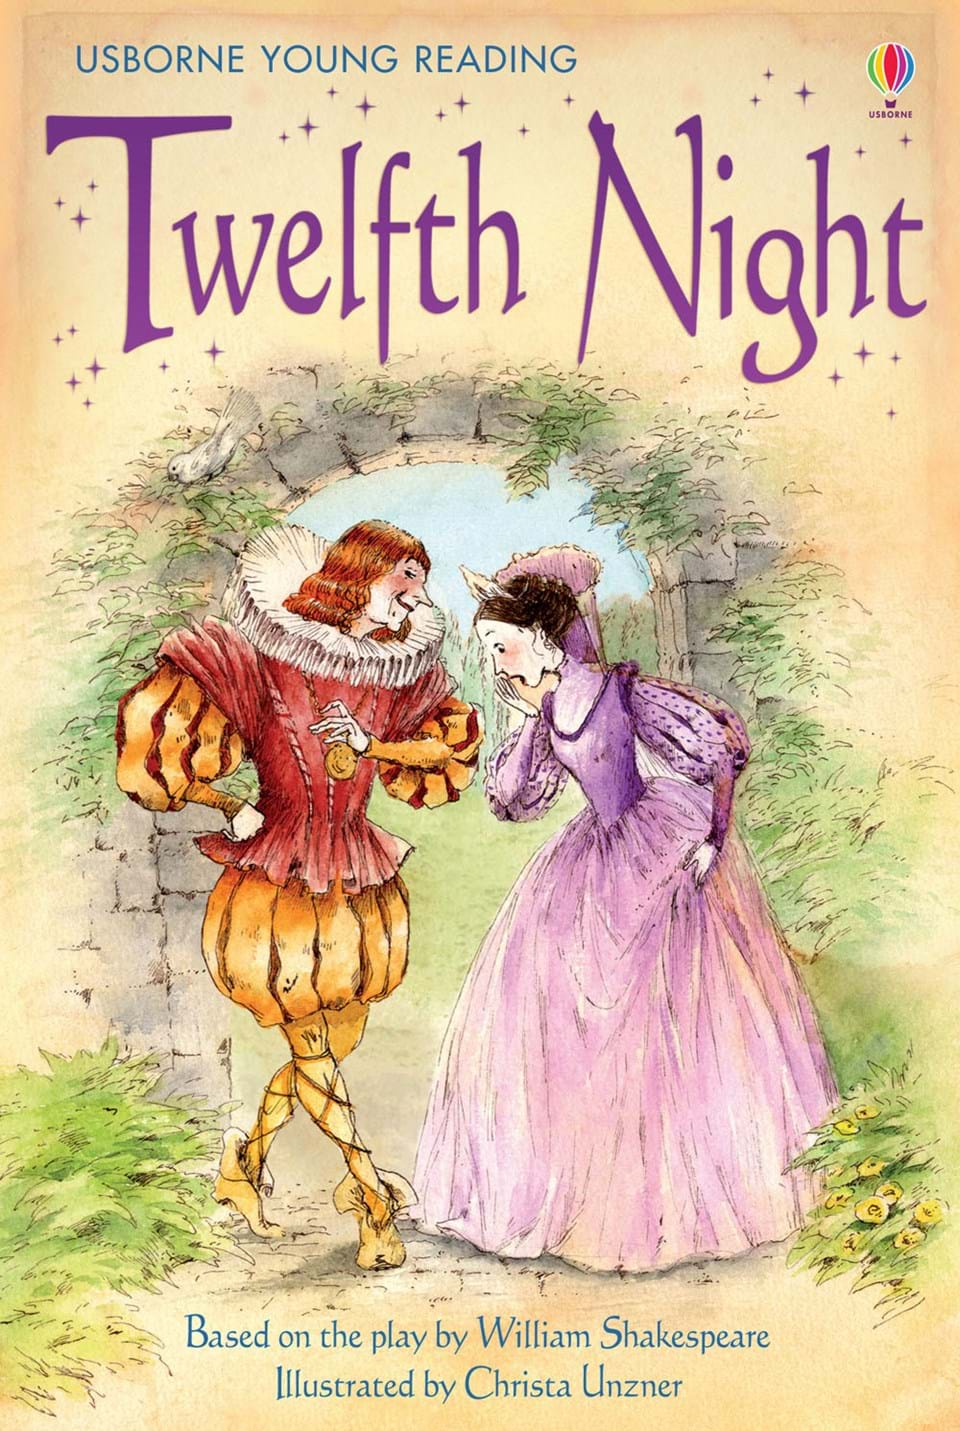 a summary of the scenes in twelfth night a play by william shakespeare No fear shakespeare twelfth night read the sparknote → act 1, scene 1, page 2 act 1, scene 2, page 2 original text: modern text: enter viola, a captain .